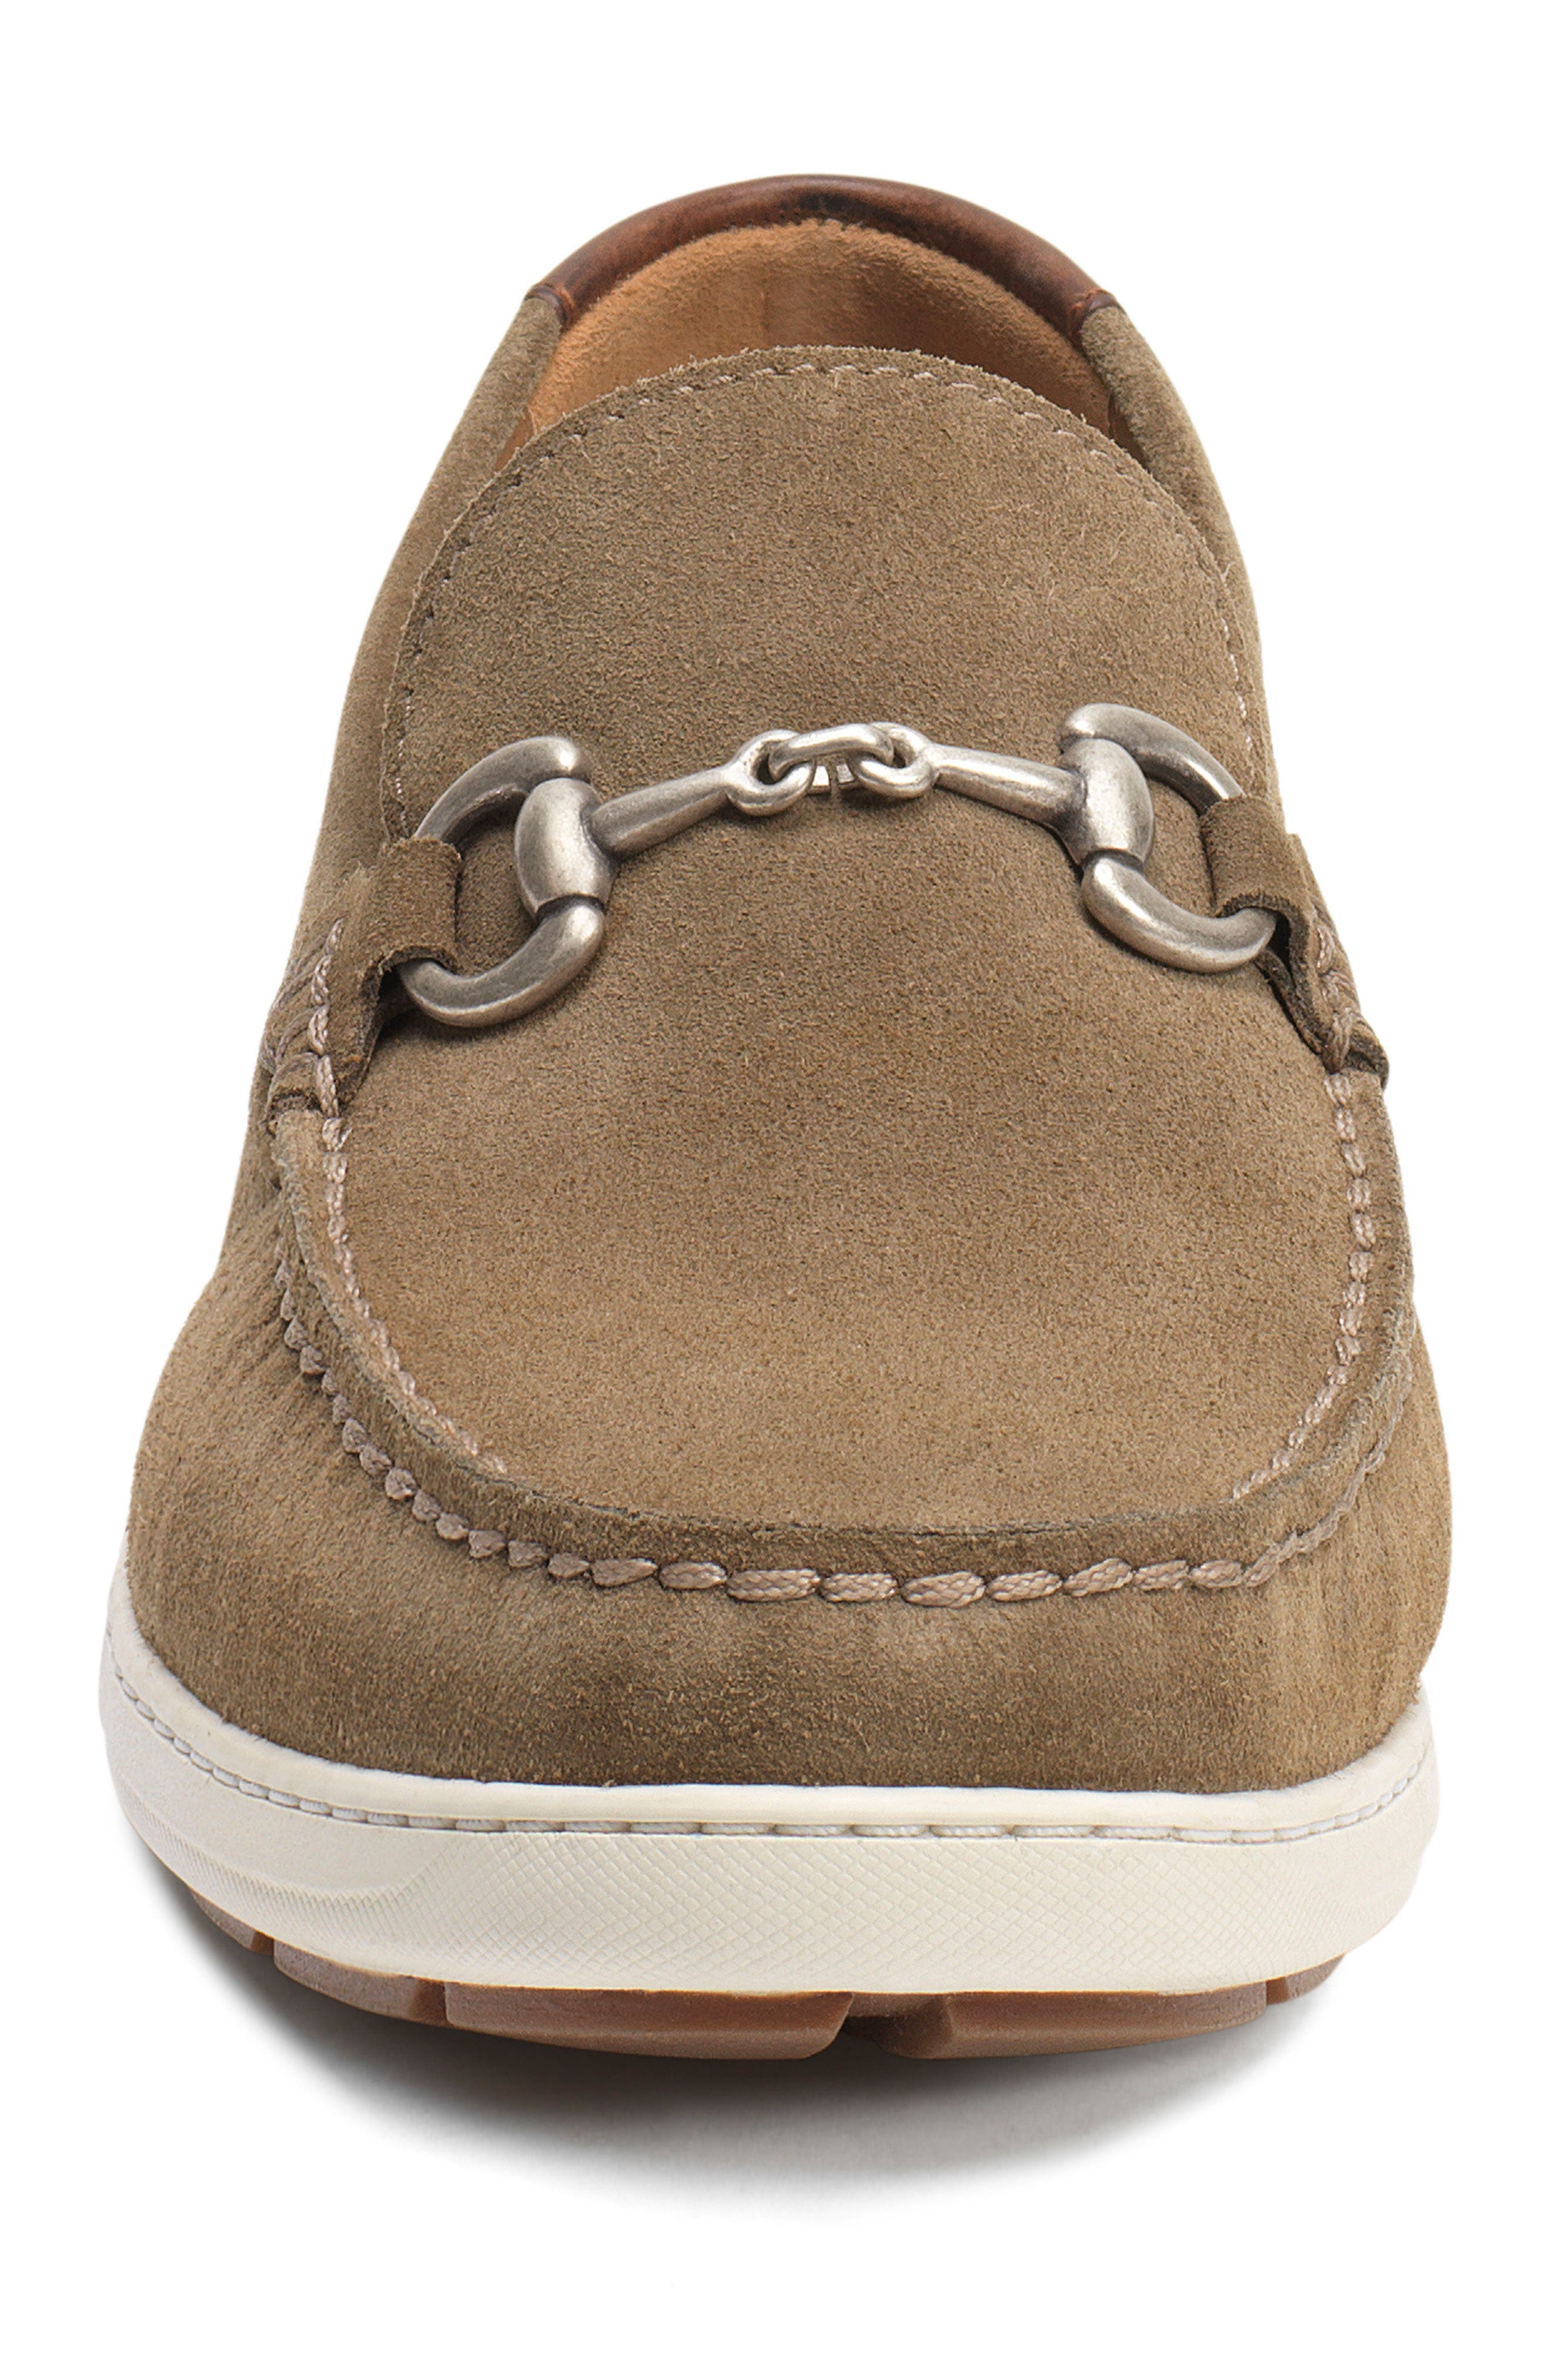 Stalworth Bit Loafer,                             Alternate thumbnail 4, color,                             Taupe Leather